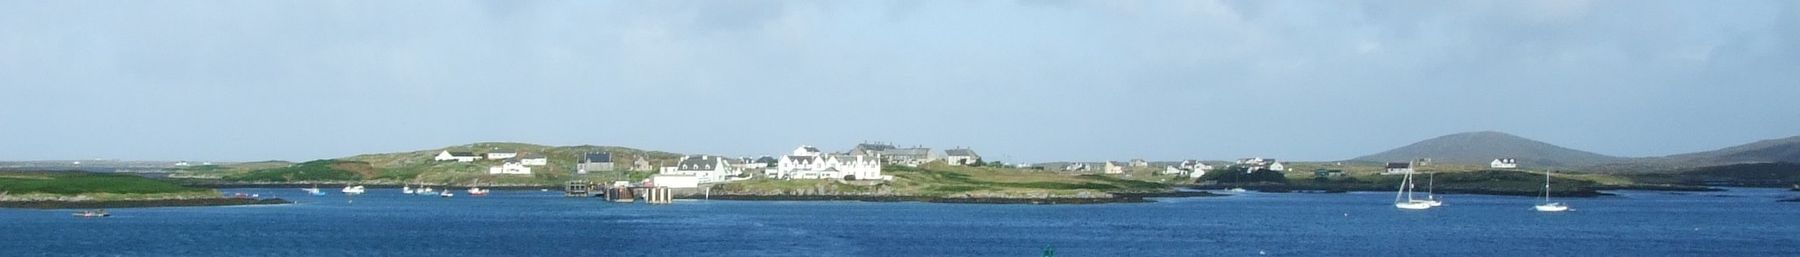 South Uist banner Lochboisdale from the ferry.JPG